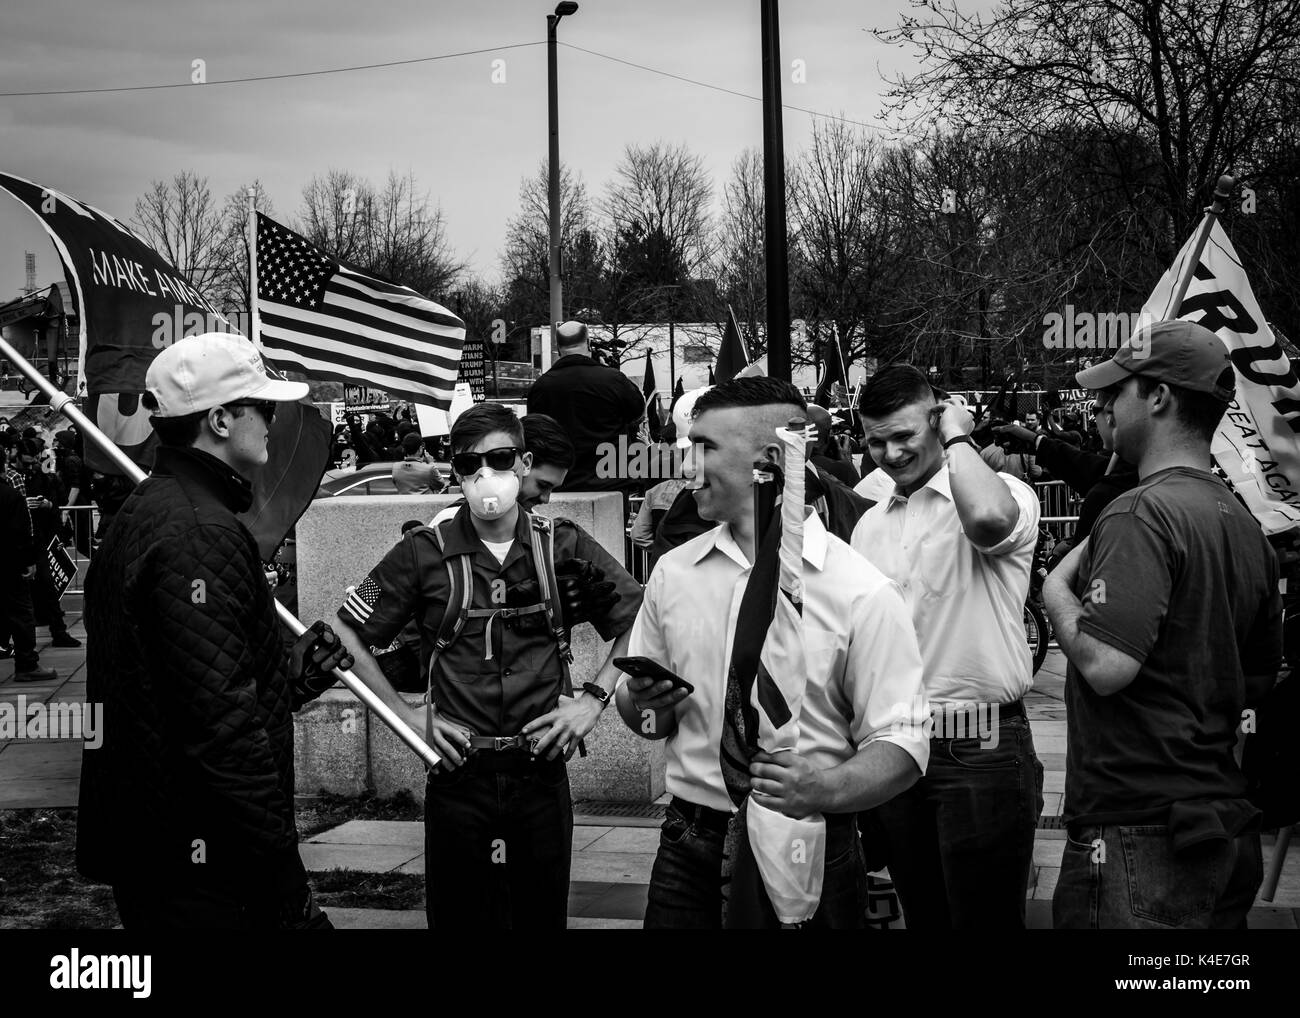 Members of Vanguard America, a violent Fascist organization distinguished by their white polo shirts, arrive at the rally. - Stock Image